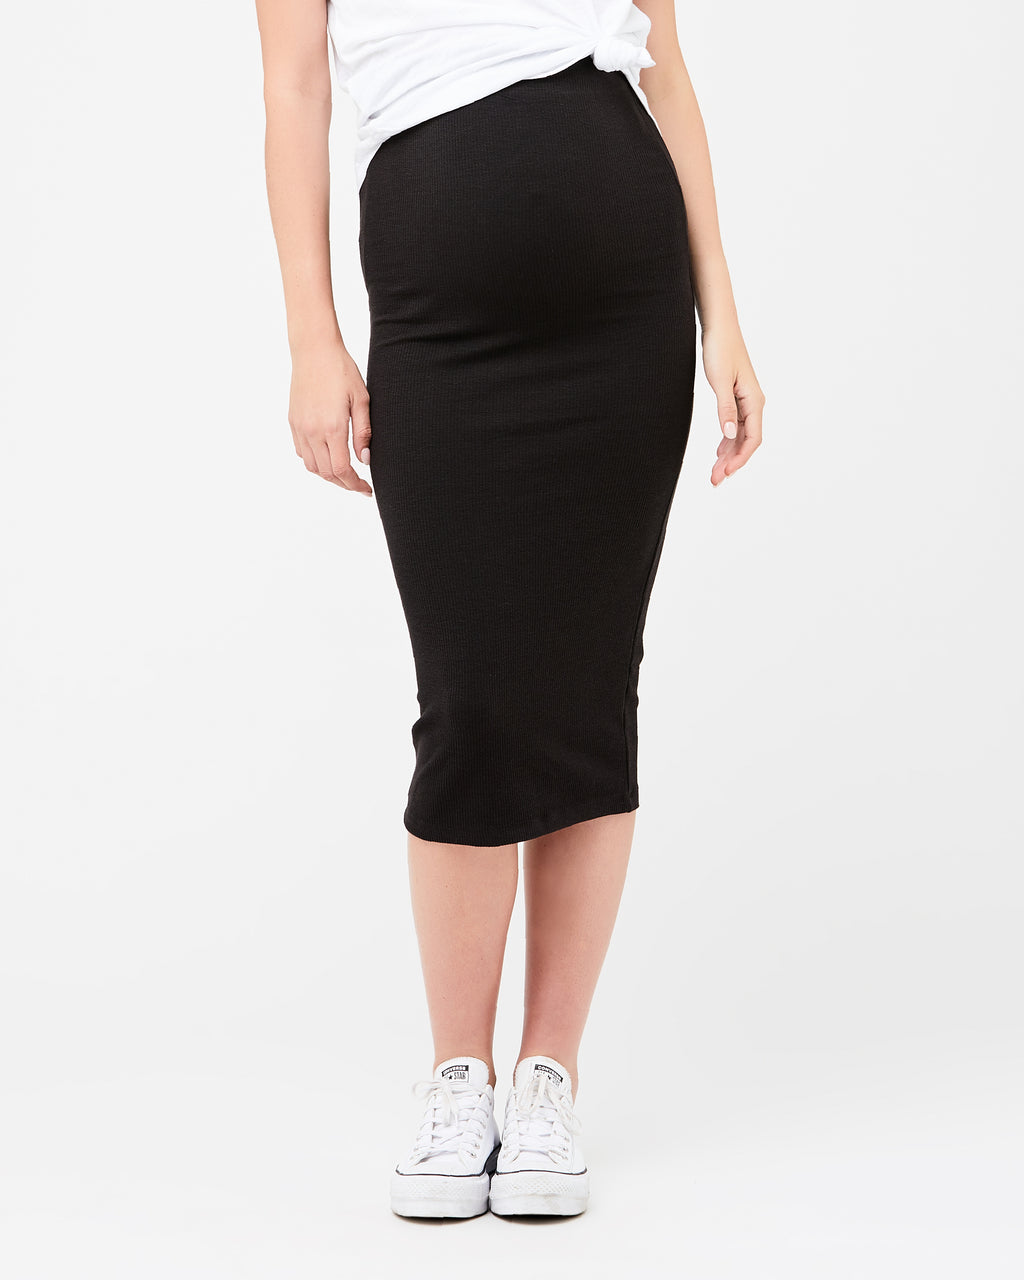 Ribbed Knit Pencil Skirt - Nursing & Maternity Clothes